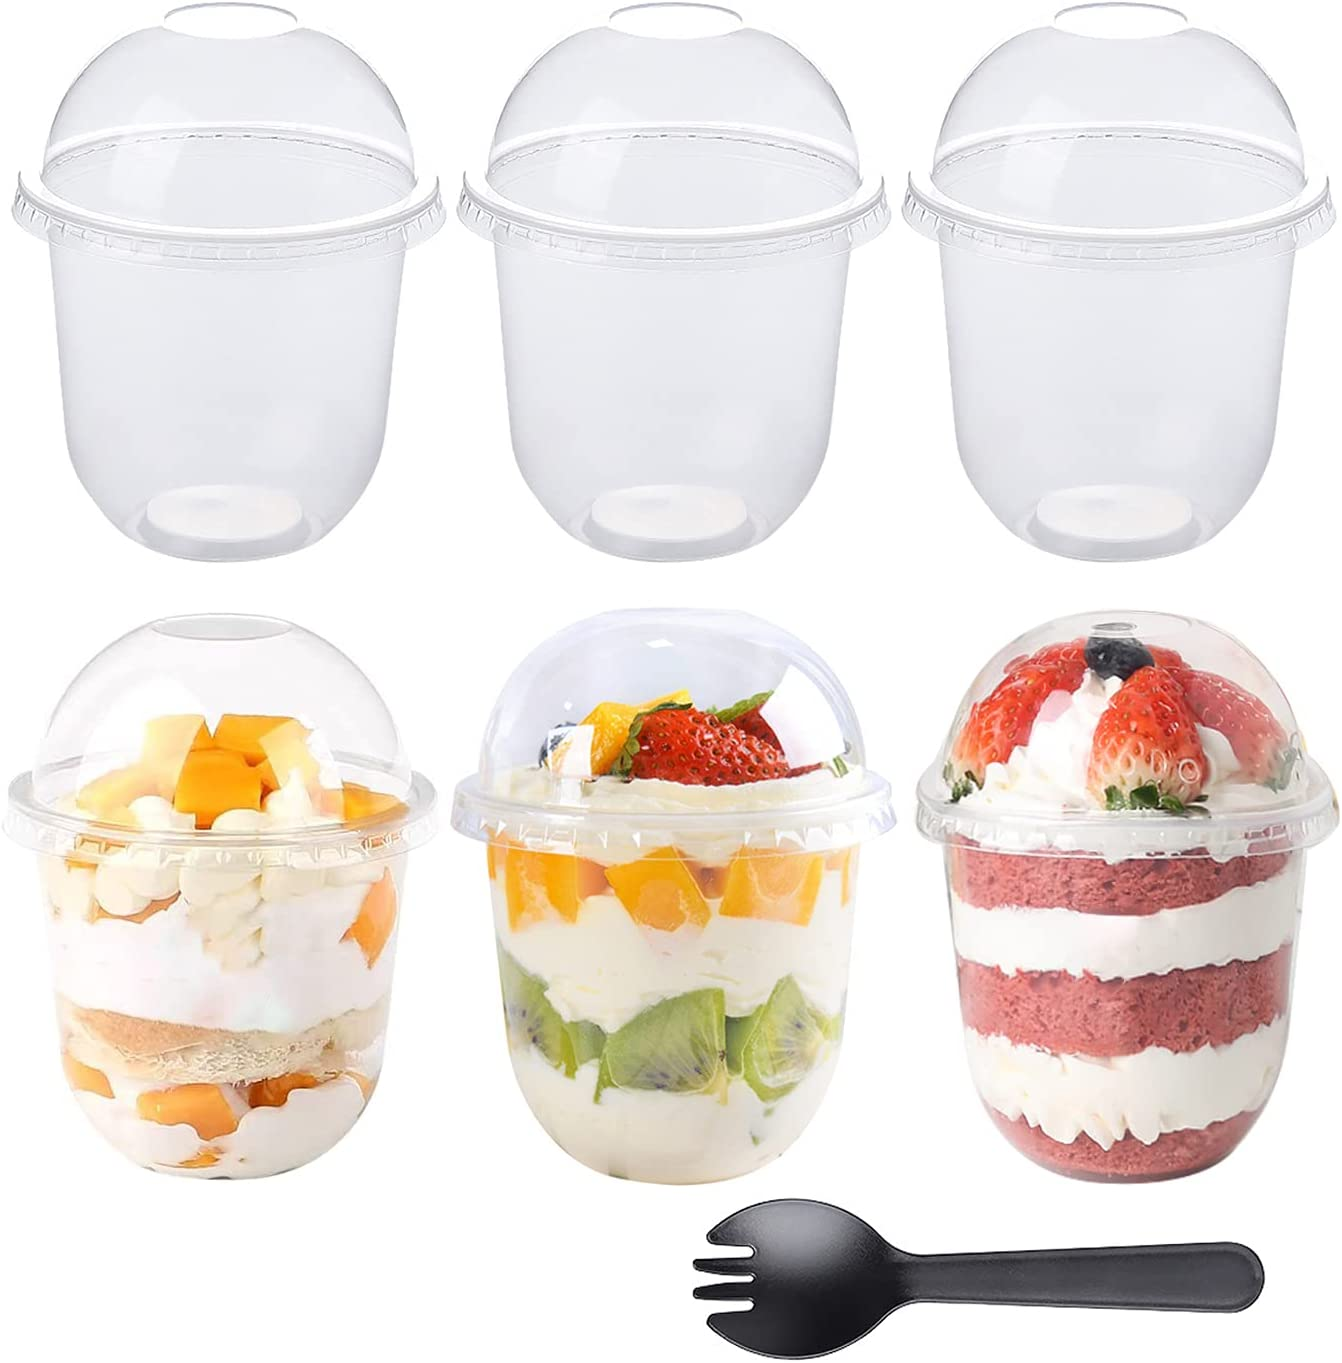 50Pcs 12oz Clear Plastic Cups with Dome Lids No Hole and 50Pcs Sporks, Disposable Dessert Party Cups for Ice Cream Cake Cold Drinks